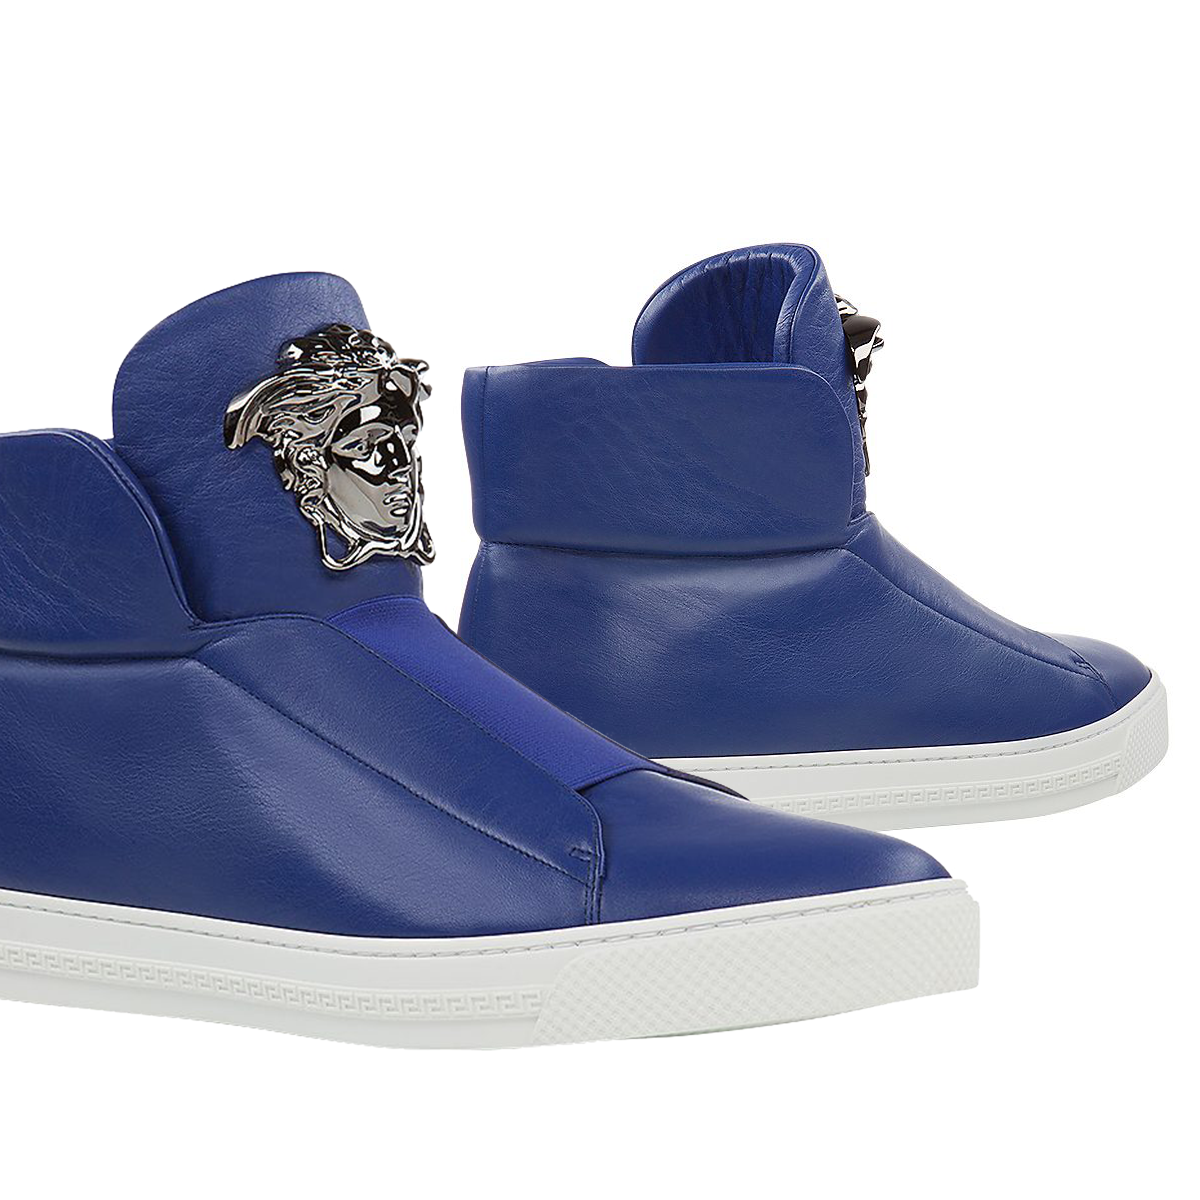 f7ac5187 Go for a glorious style statement with these slip-on # Versace ...